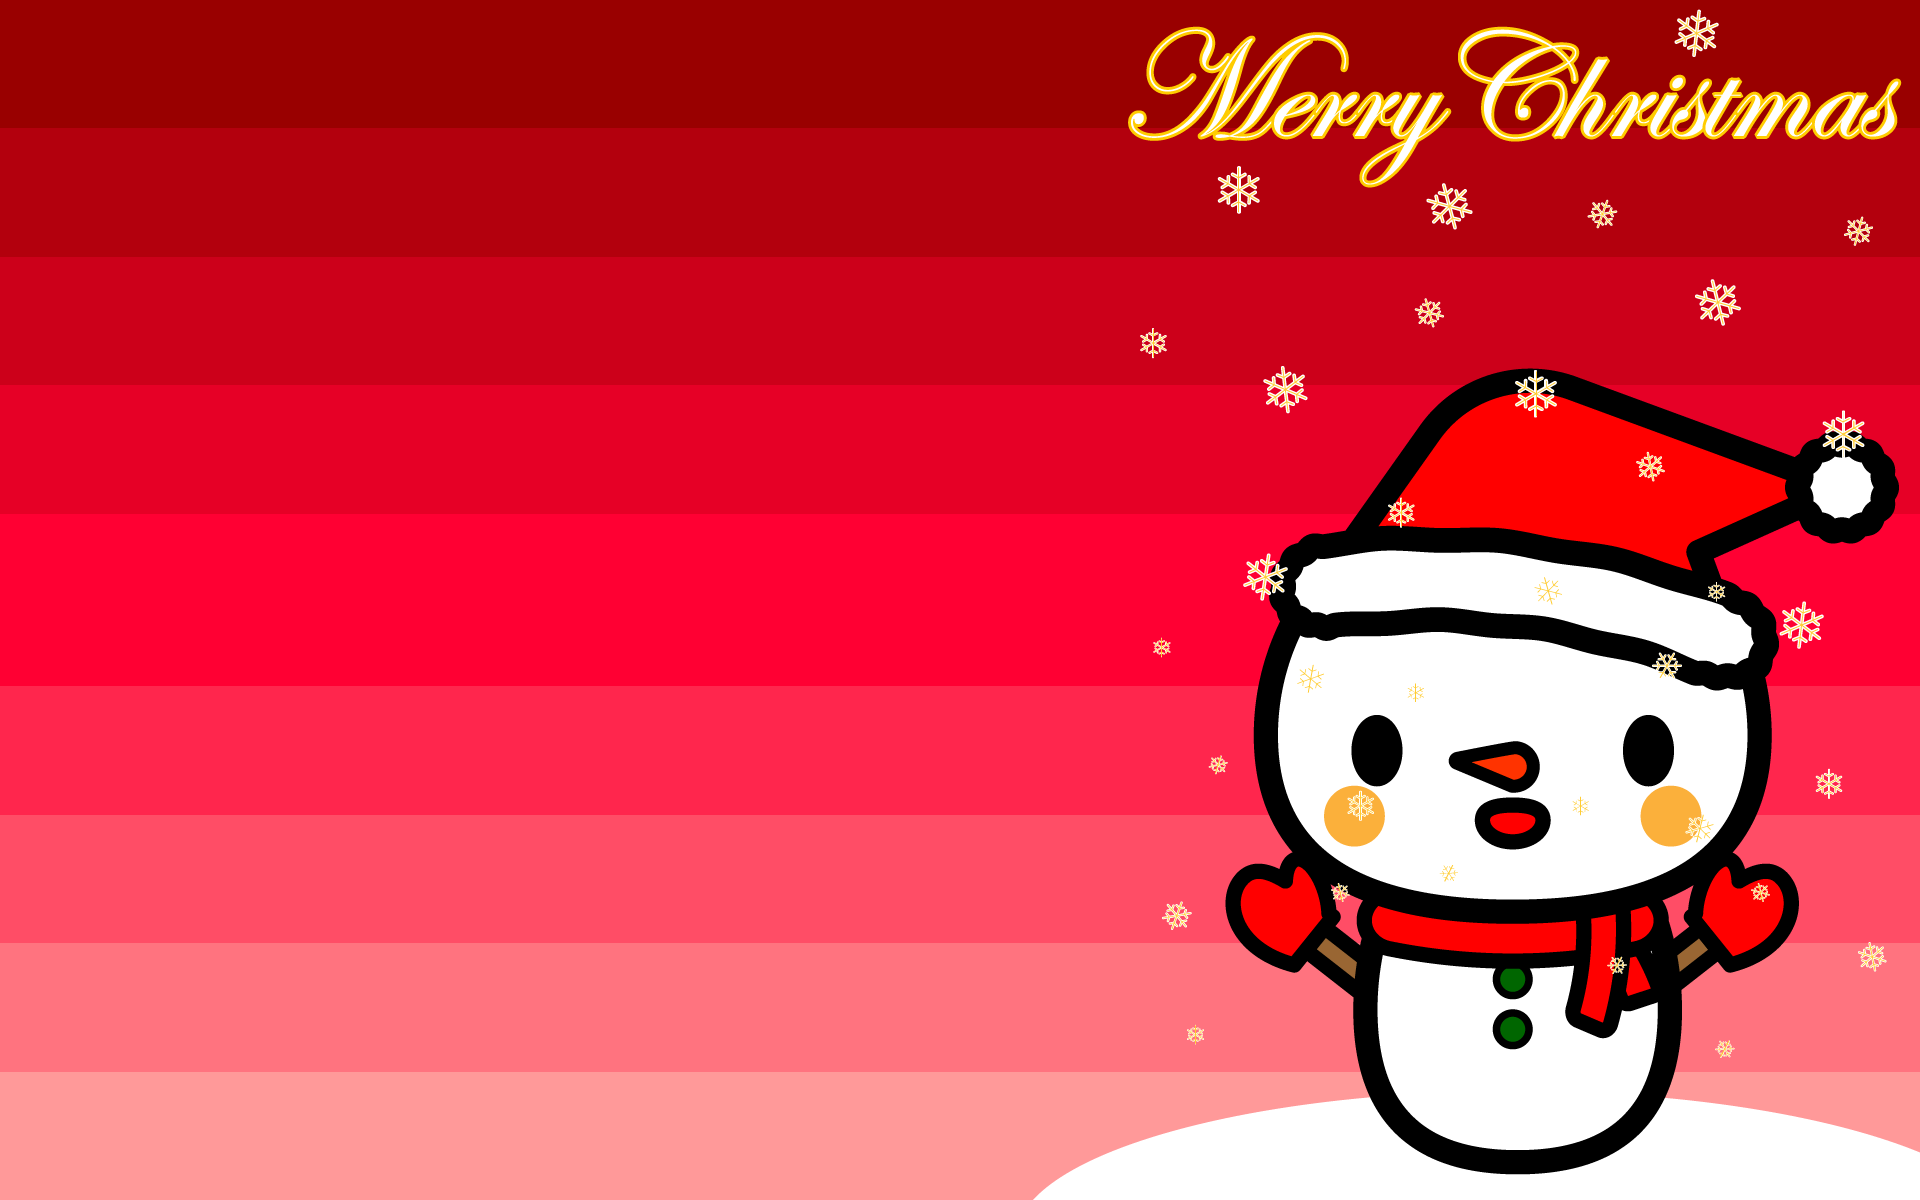 wallpaper6_christmas-snowman-red-pc